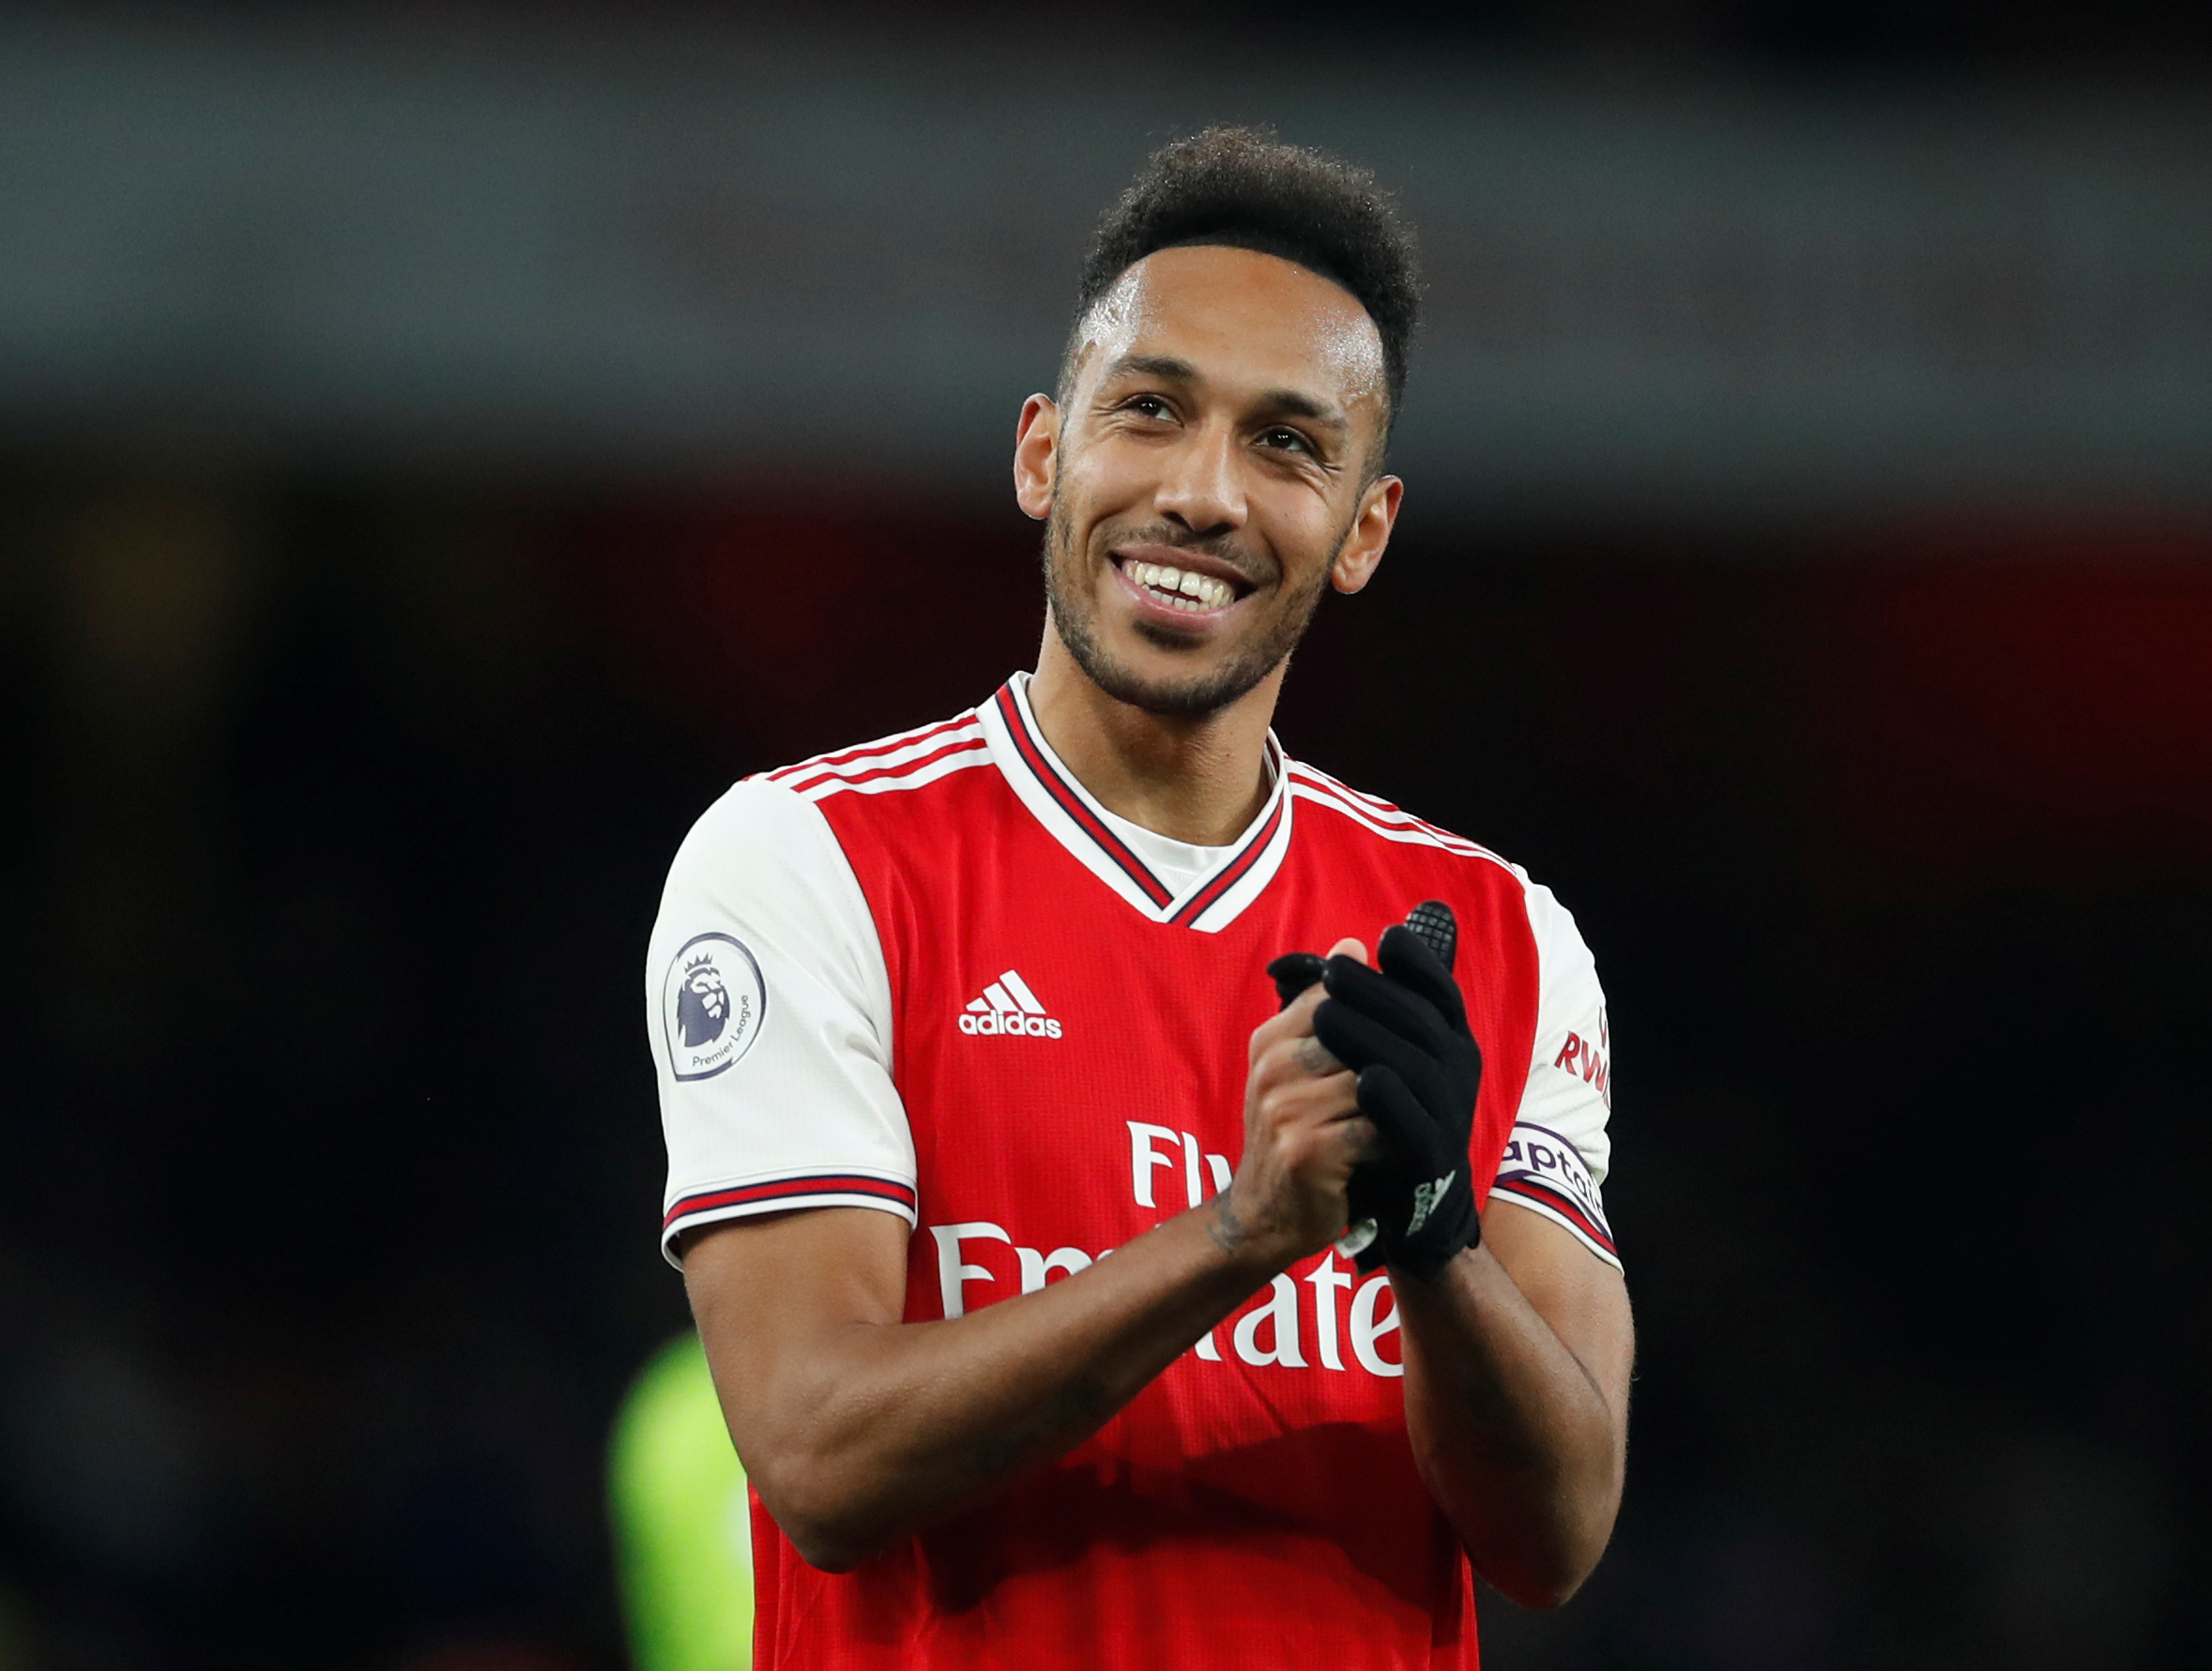 Is it time to invest in Arsenal assets after Gameweek 28? 5